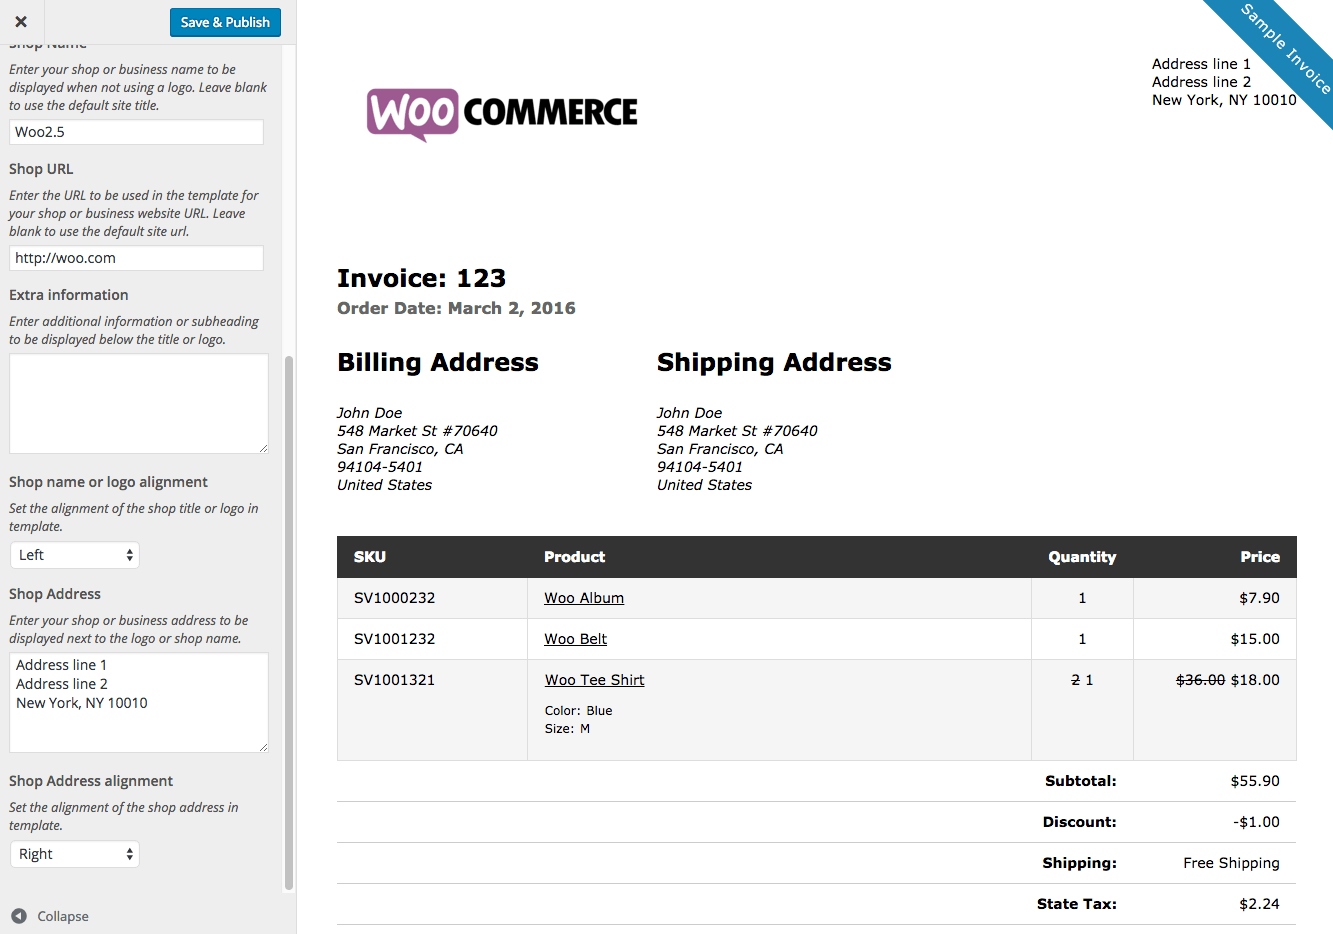 Modaoxus  Winsome Print Invoices Amp Packing Lists  Woocommerce With Inspiring Woocommerce Print Invoices  Packing Lists Customizer With Alluring Carcostcanada Wholesale Invoice Price Report Also Statement Of Invoices In Addition Mac Invoicing And Template Invoice For Services As Well As Computer Invoice Template Additionally What Is An Invoice In Business From Woocommercecom With Modaoxus  Inspiring Print Invoices Amp Packing Lists  Woocommerce With Alluring Woocommerce Print Invoices  Packing Lists Customizer And Winsome Carcostcanada Wholesale Invoice Price Report Also Statement Of Invoices In Addition Mac Invoicing From Woocommercecom